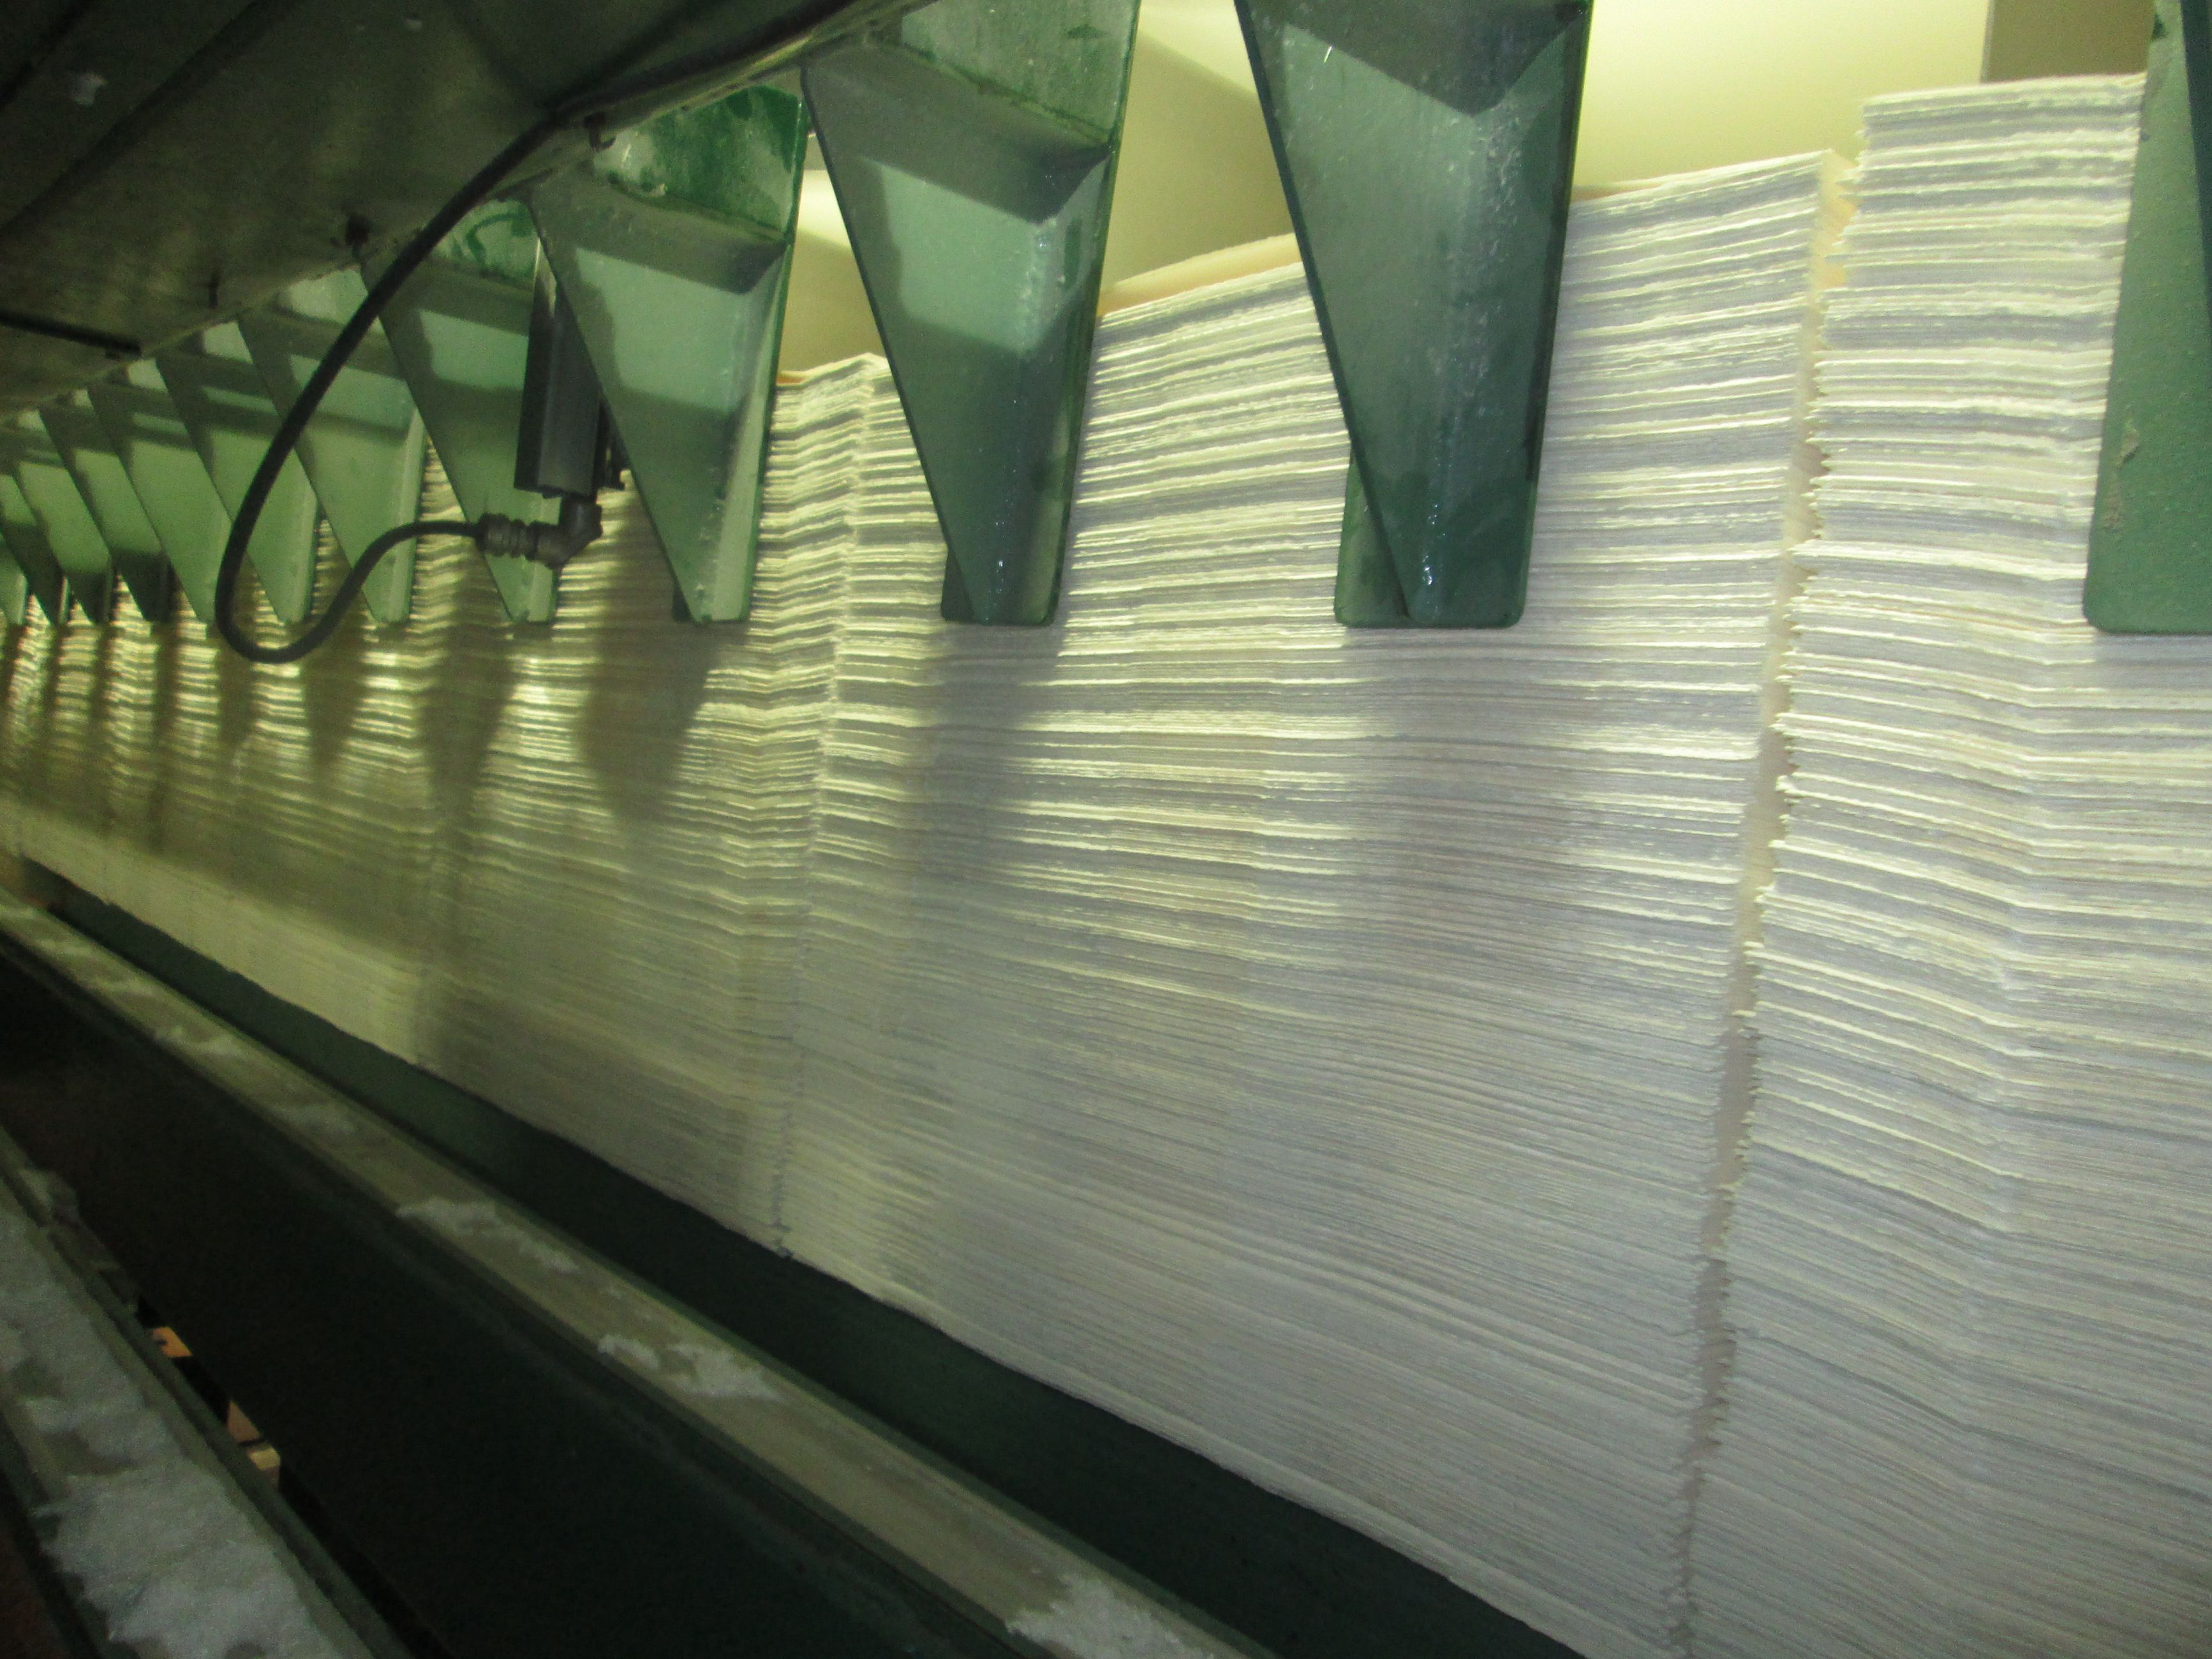 Image of sheets of dissolving pulp